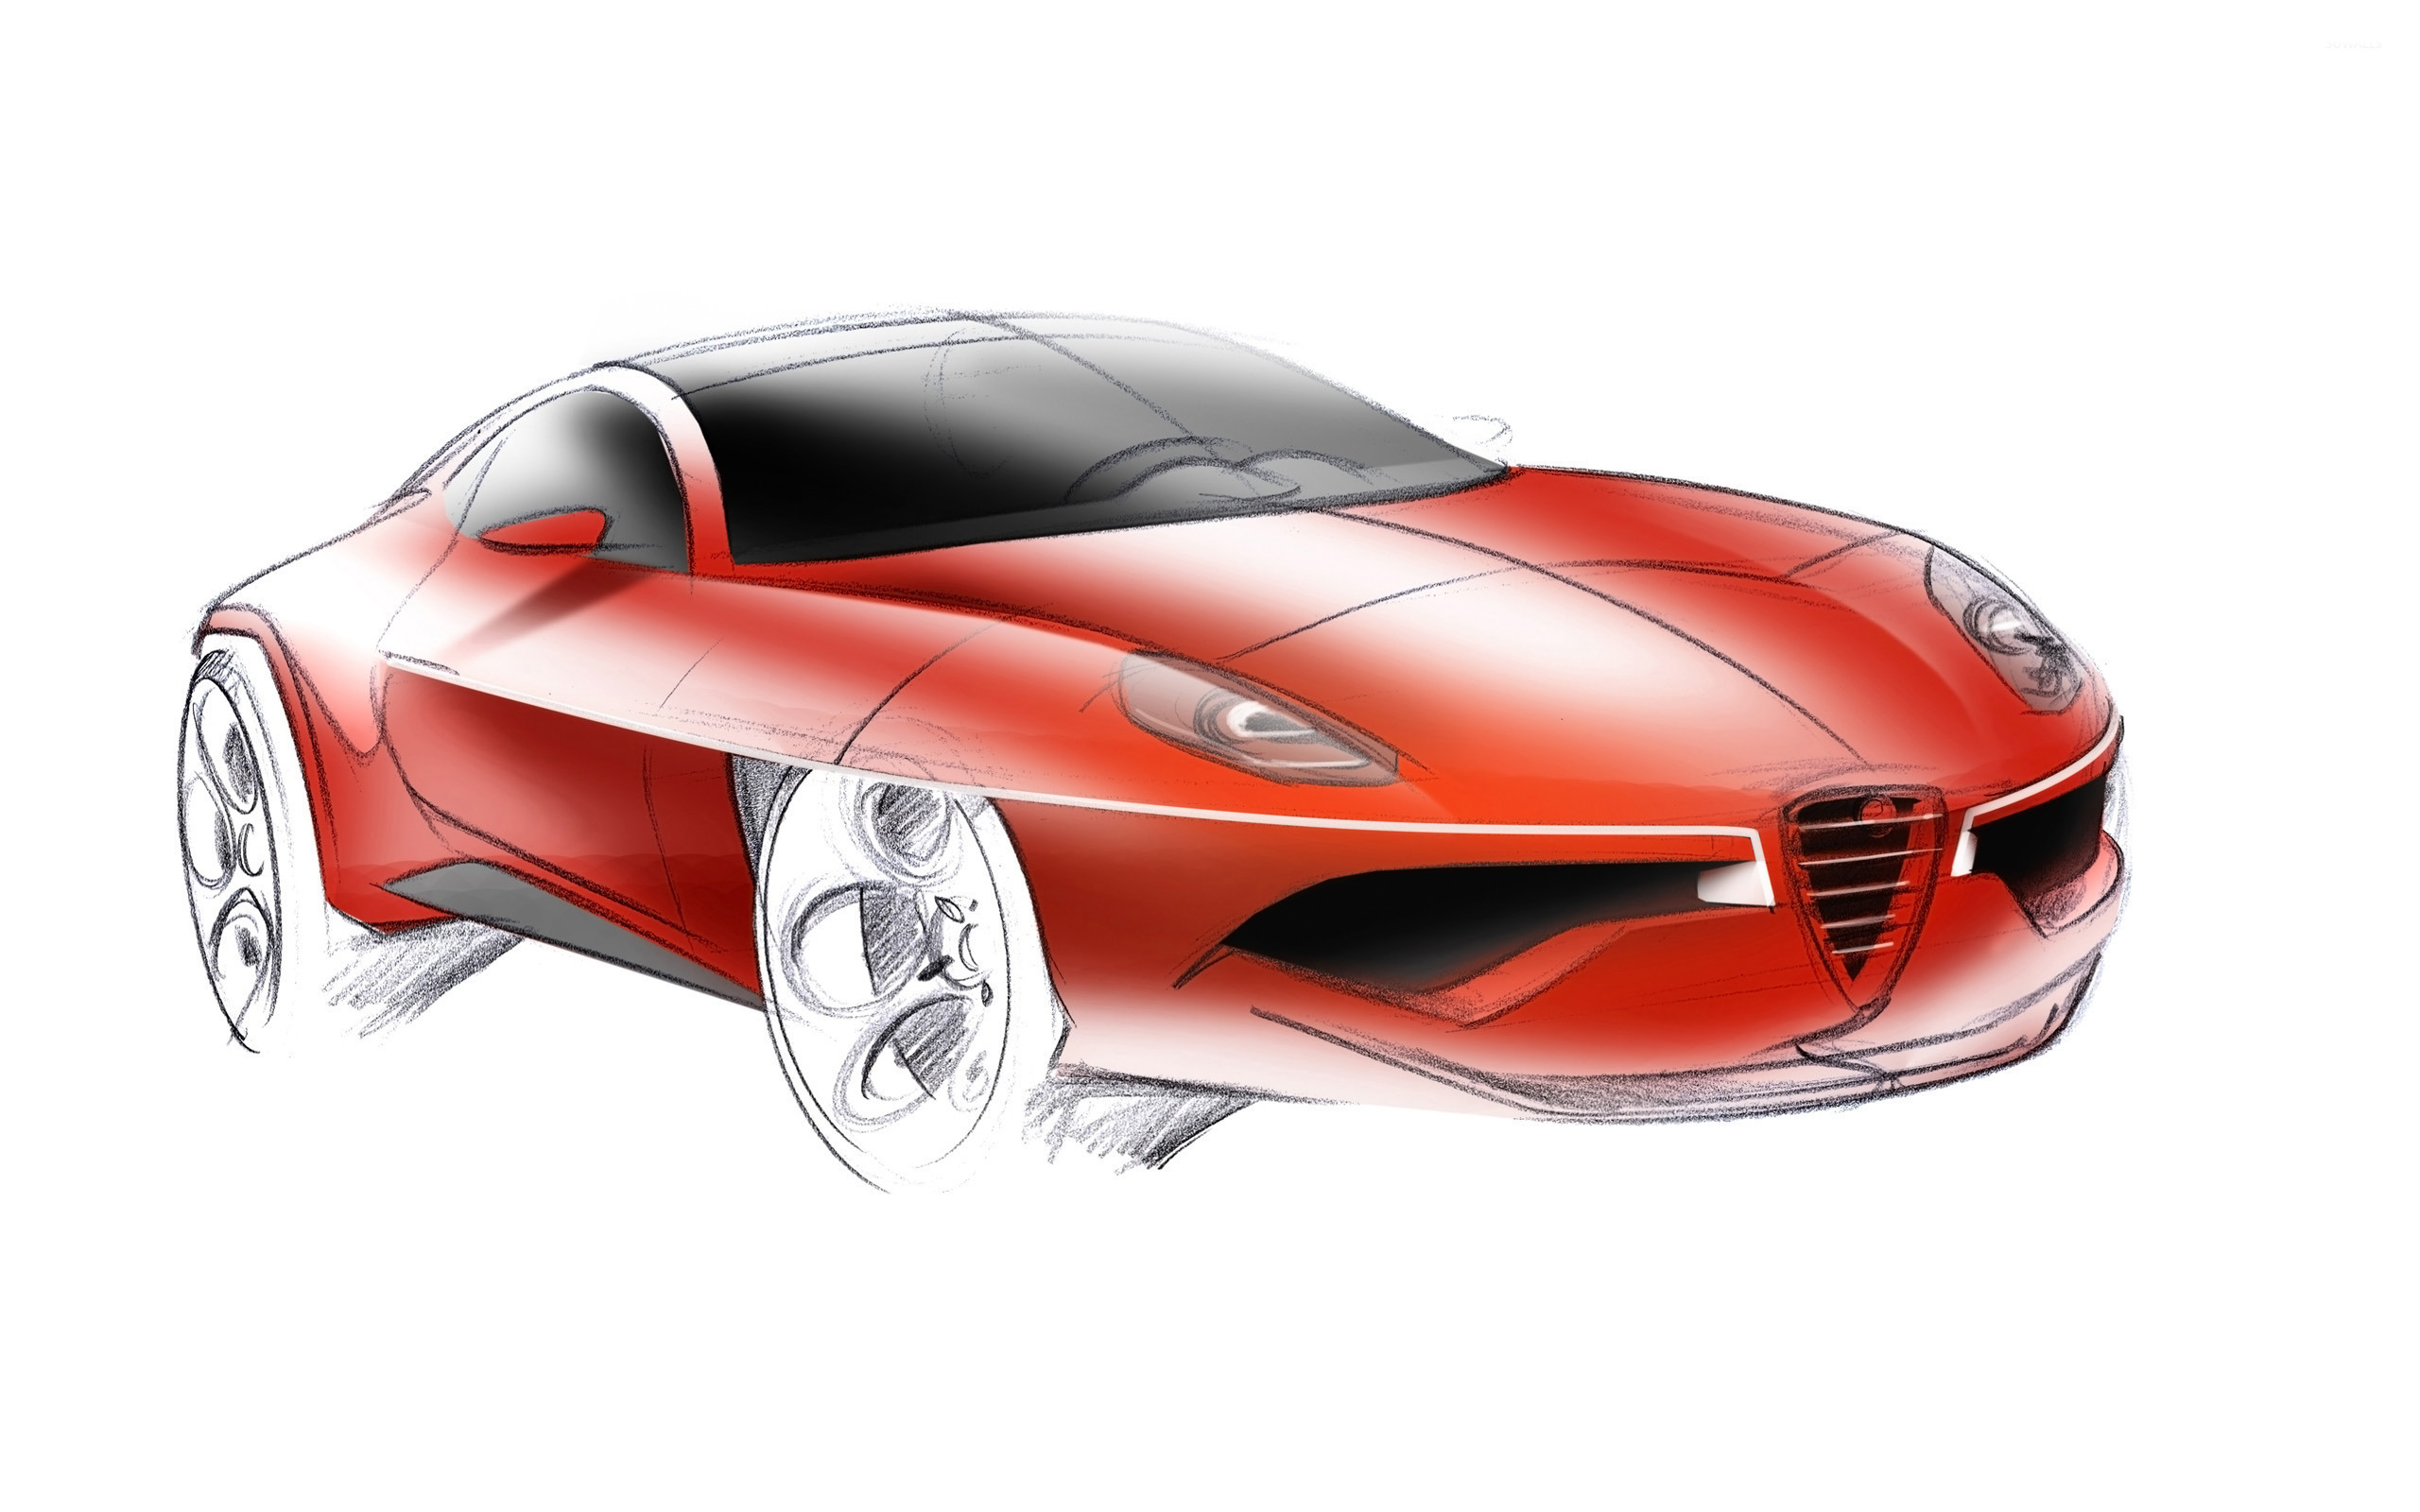 Superieur 2012 Alfa Romeo Disco Volante [2] Wallpaper